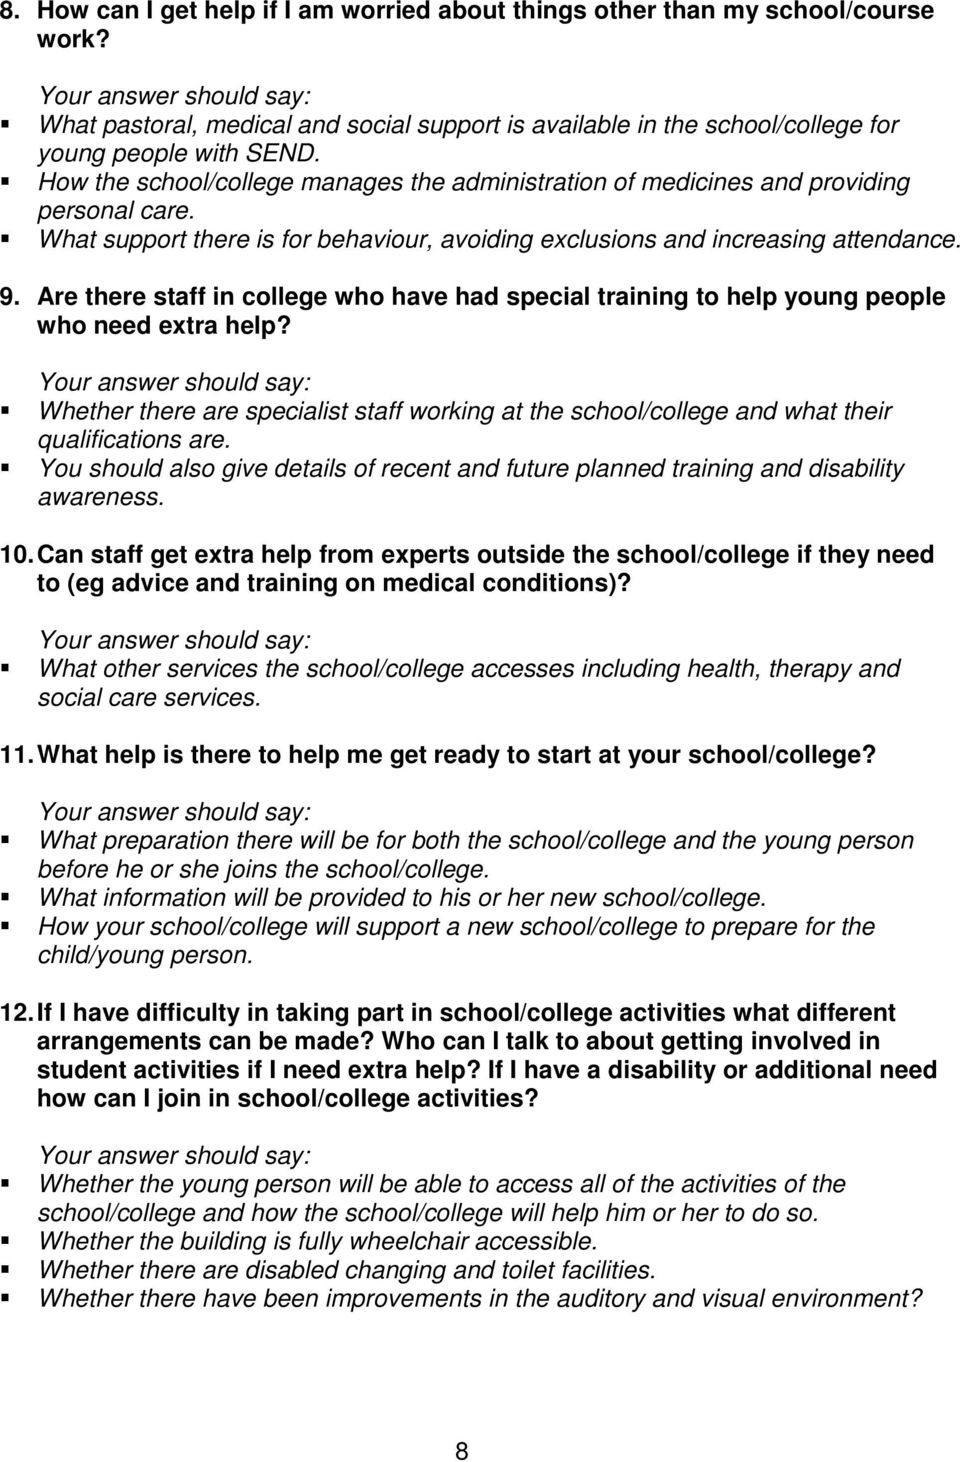 Are there staff in college who have had special training to help young people who need extra help? Whether there are specialist staff working at the school/college and what their qualifications are.